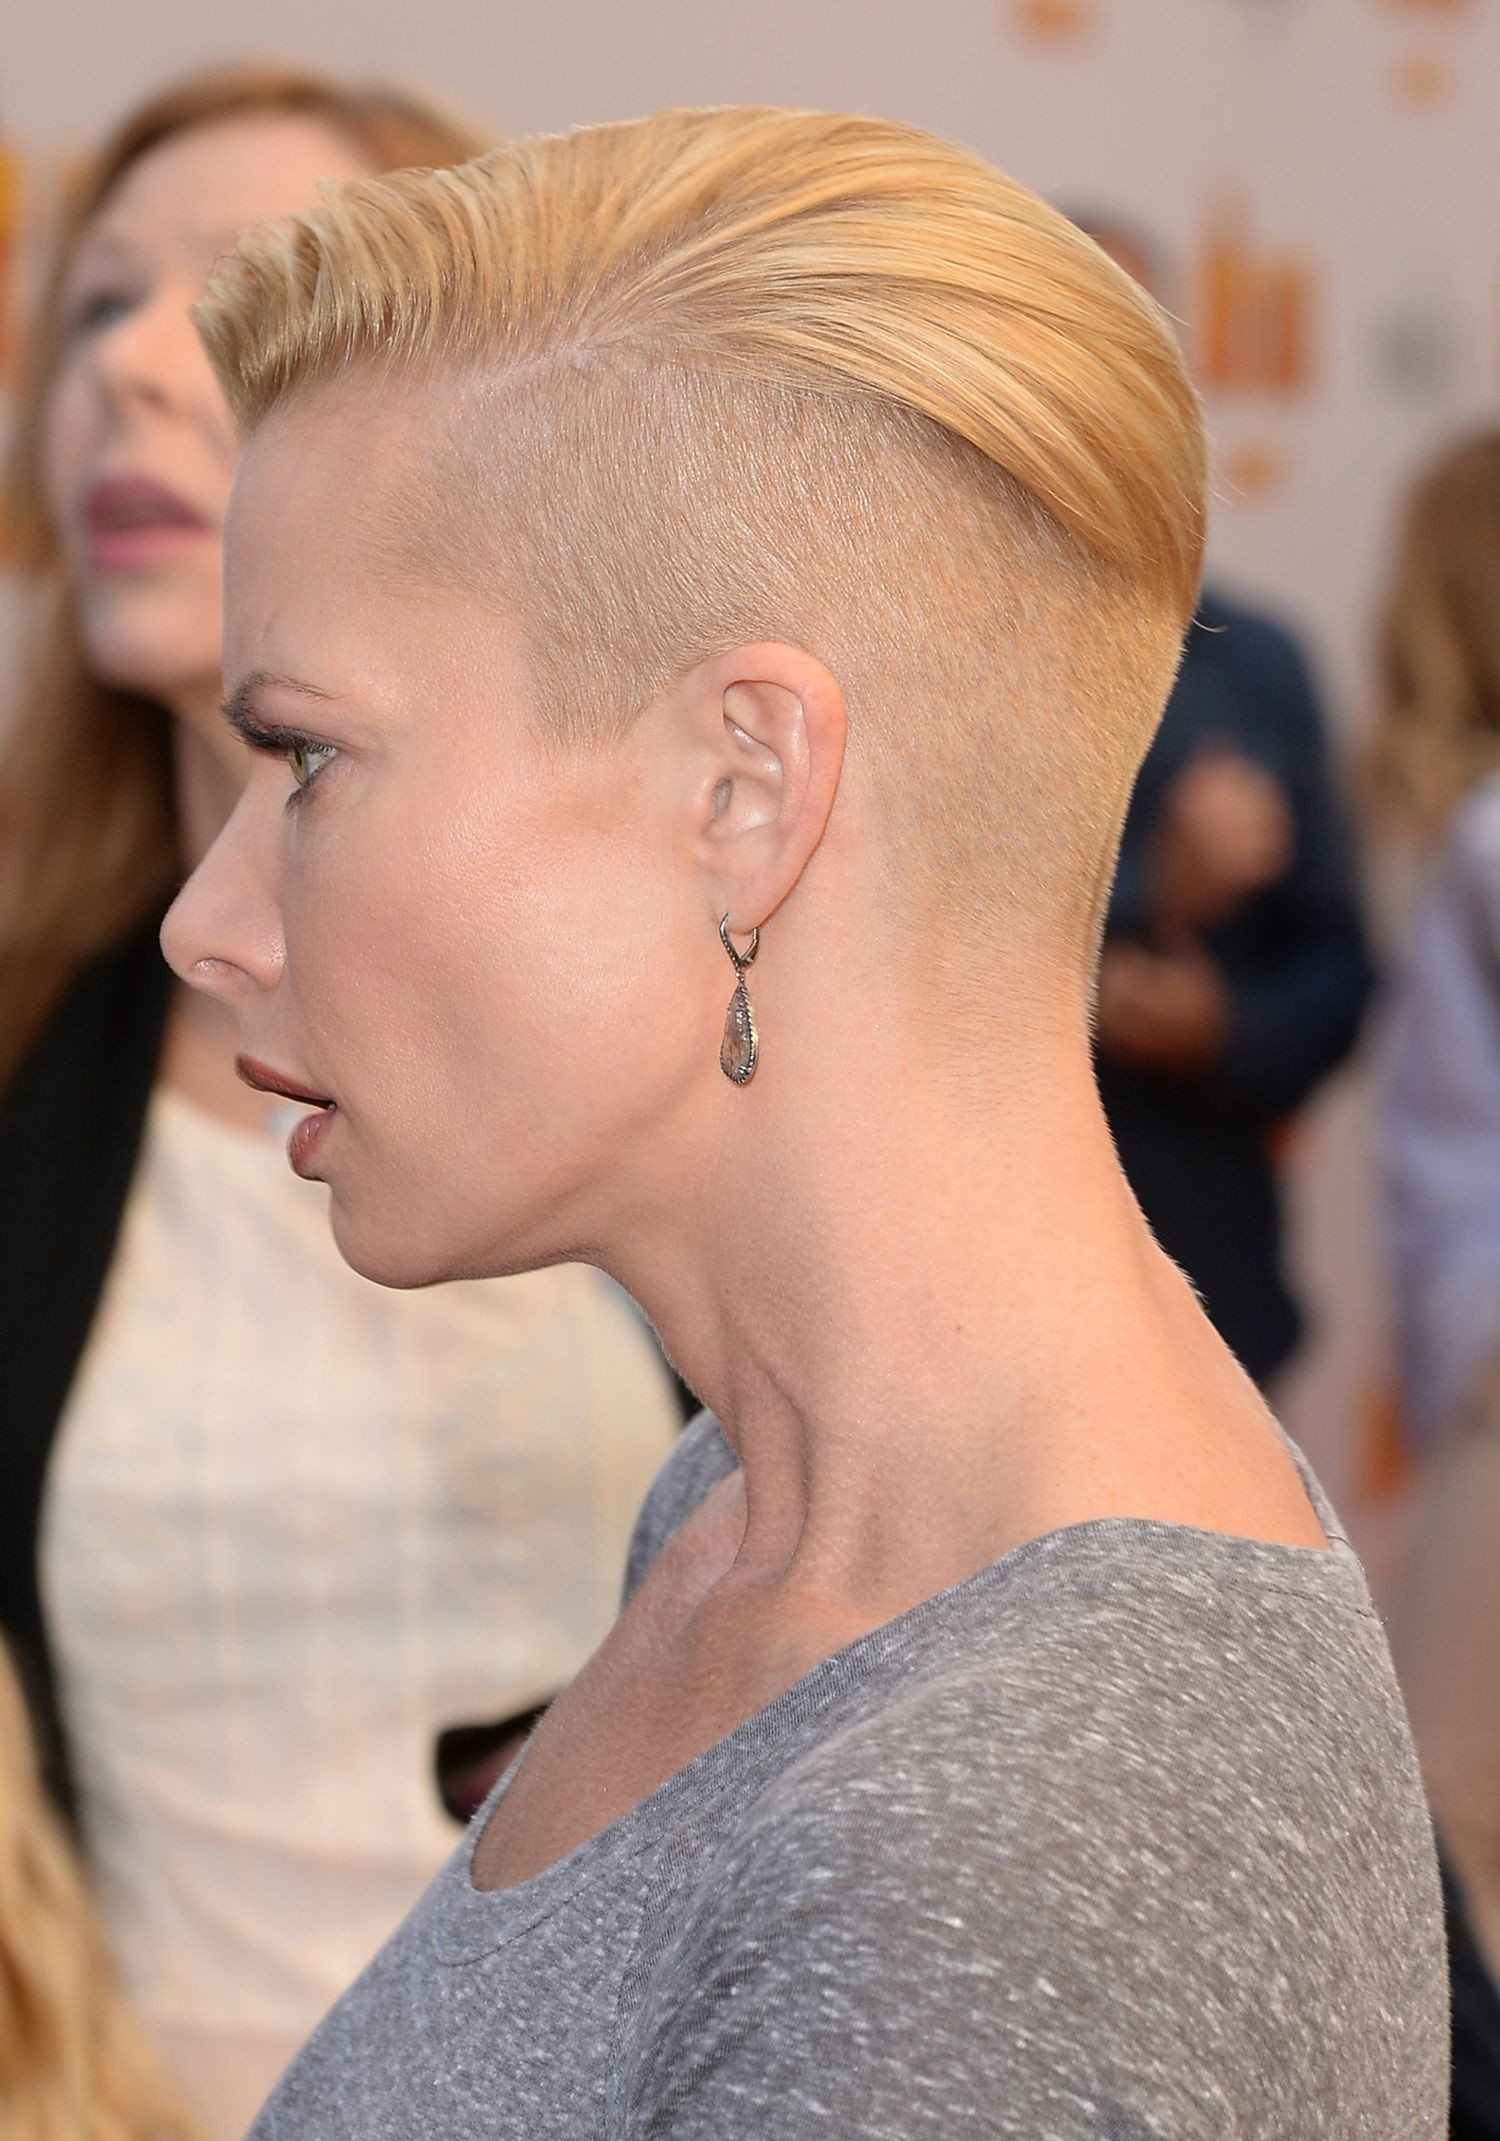 Short Hairstyles With Shaved Sides  Half Shaved Head Hairstyle Short HairStyles